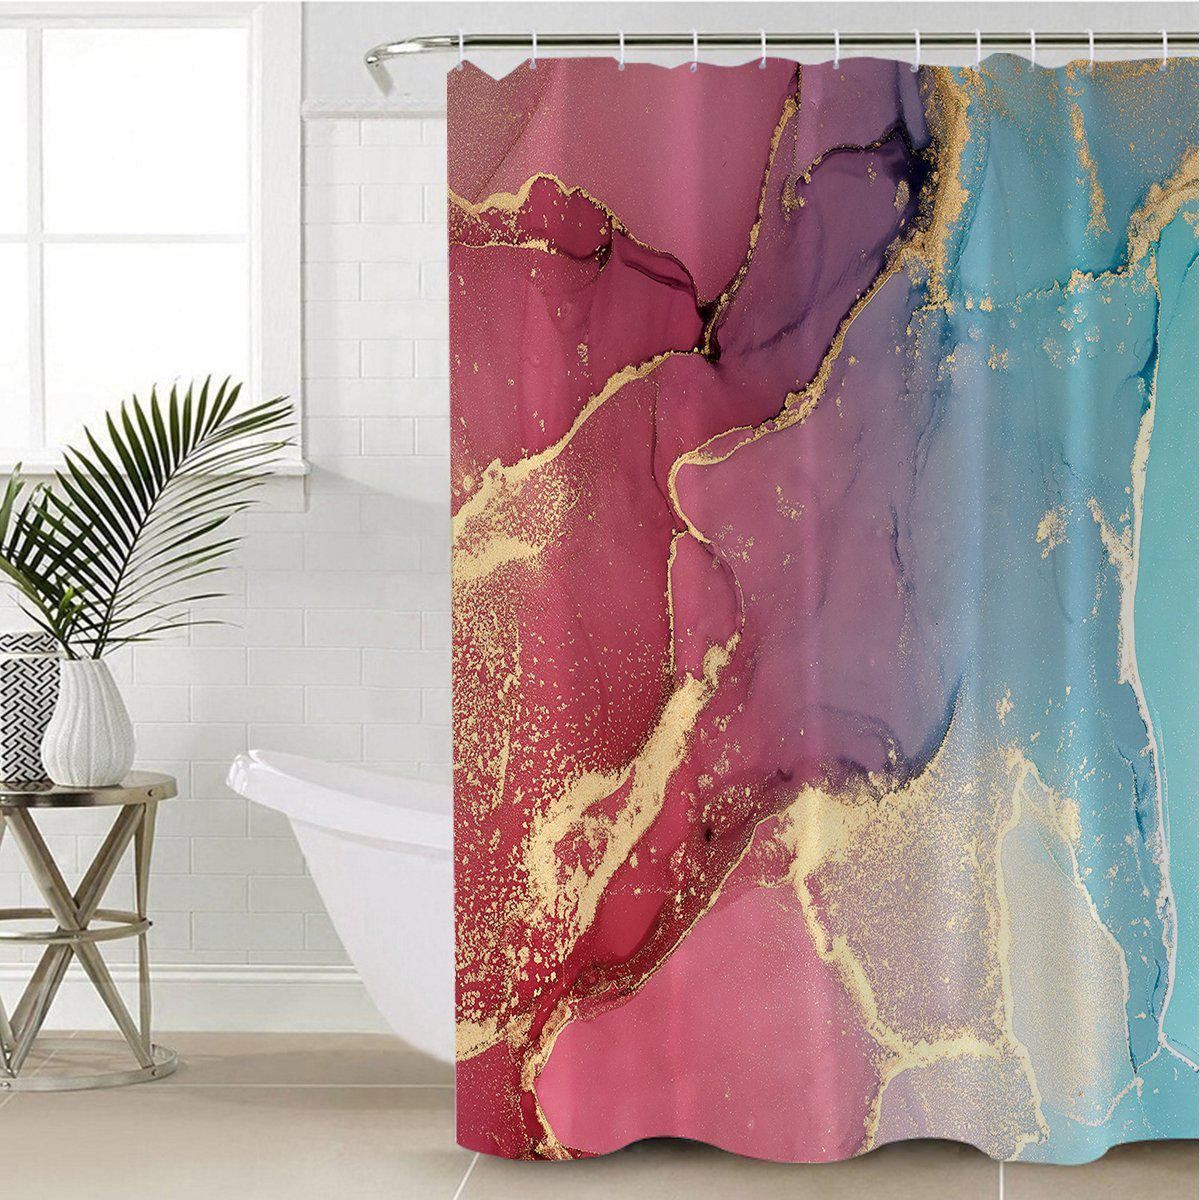 Shower Curtain-Budelli Beach Shower Curtain-Coastal Passion